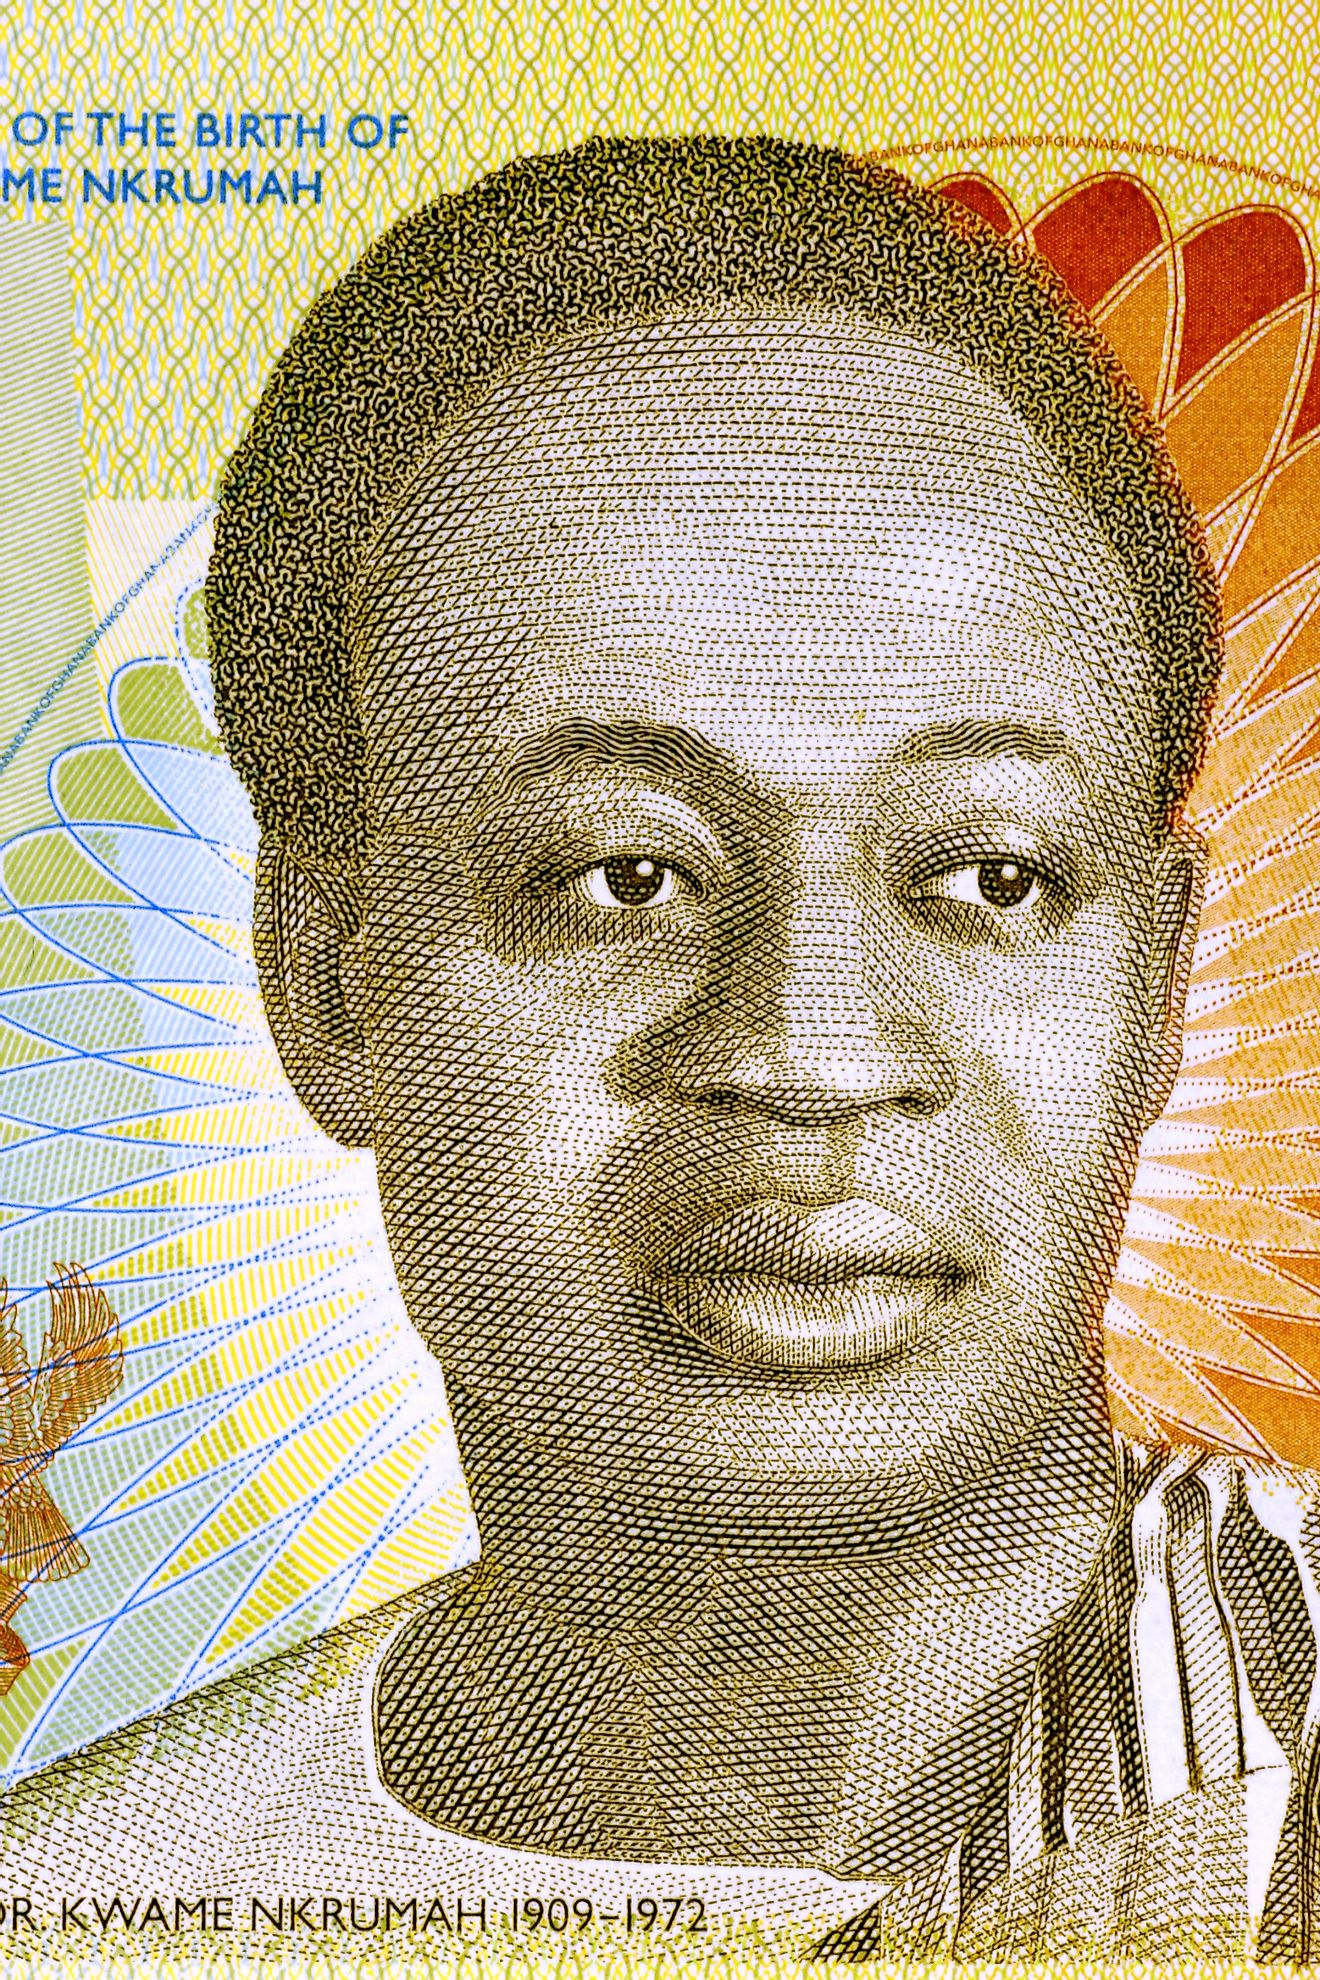 Kwame Nkrumah was the foremost figure in Ghana's successful effort to gain independence from Britain, and is as controversial as he was important.